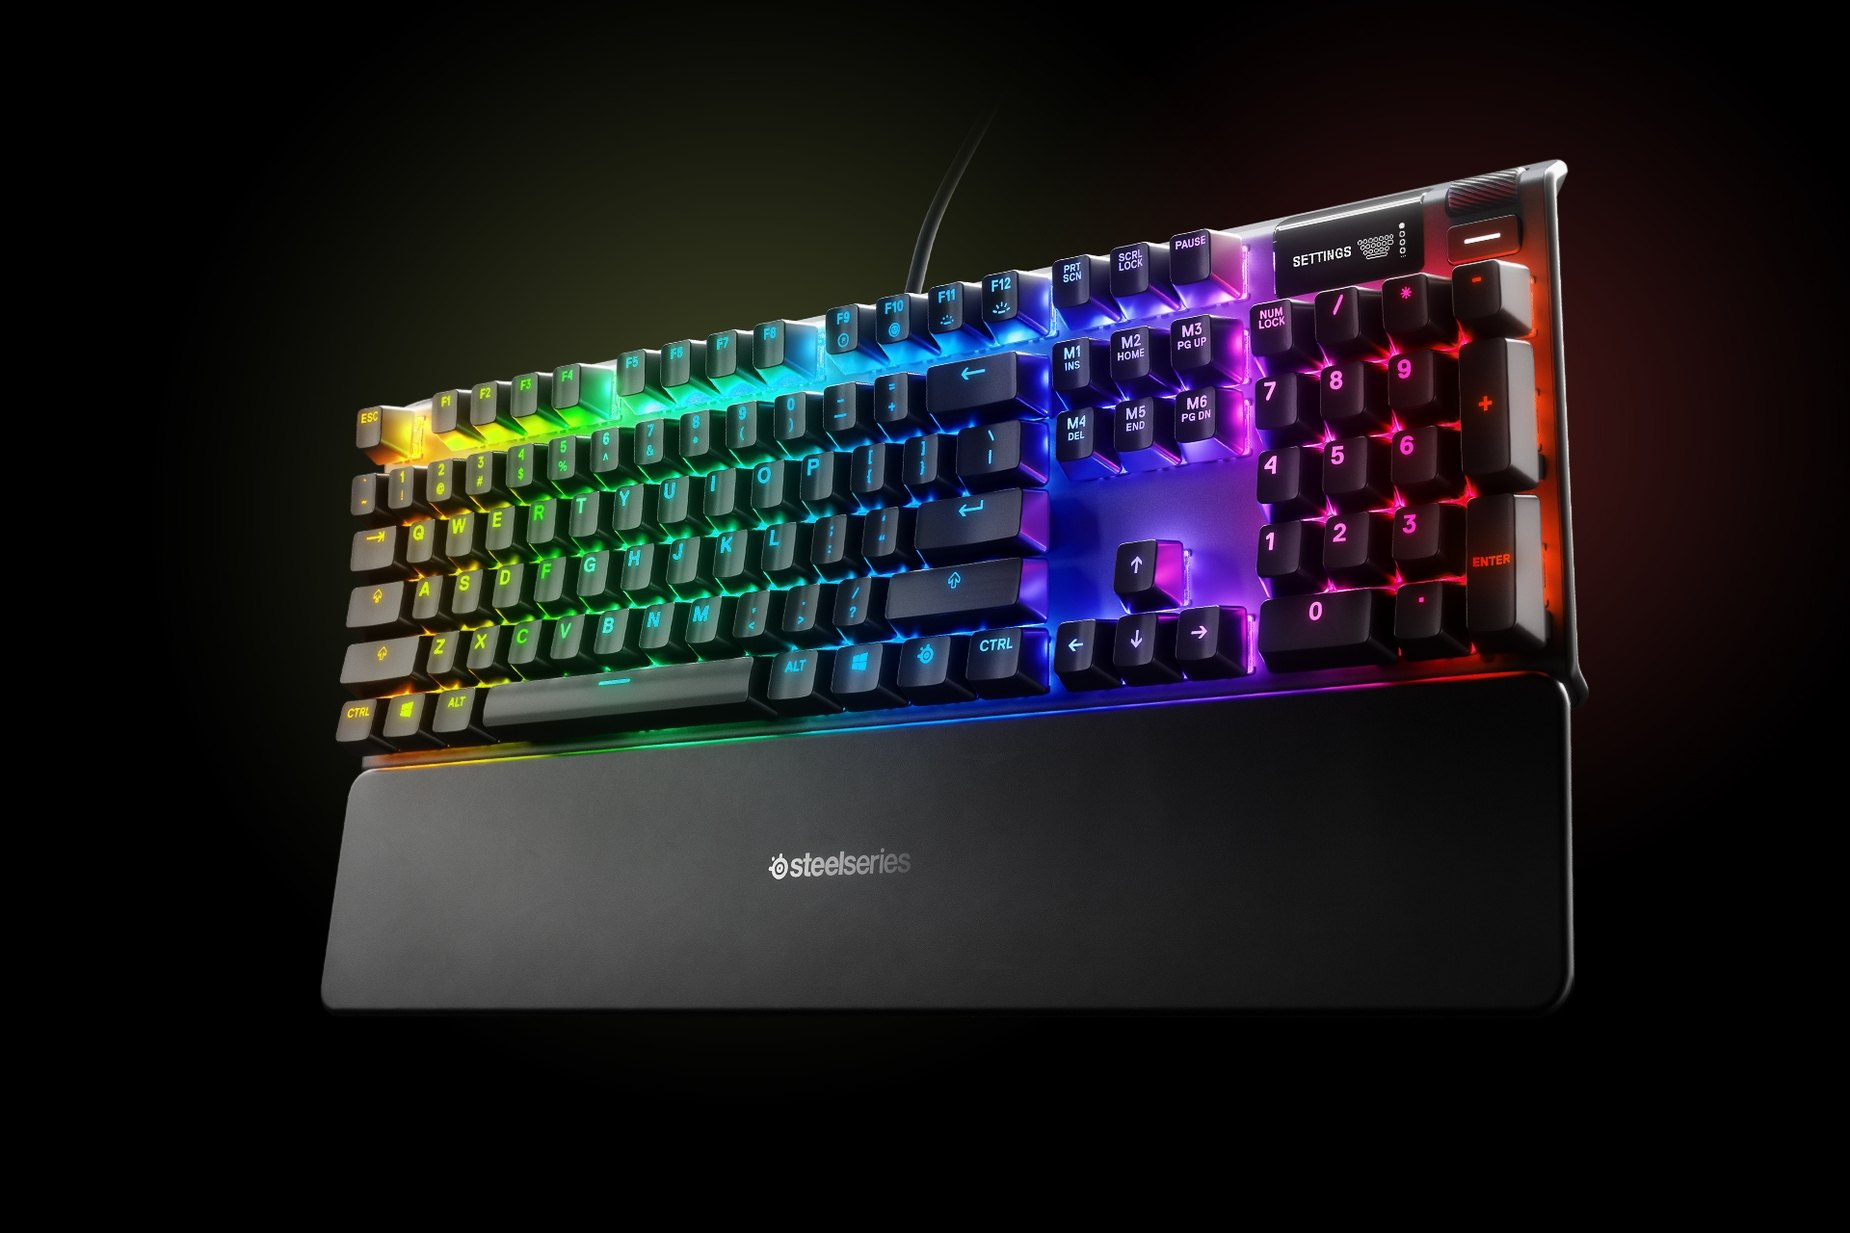 Thai-Apex 7 (Blue Switch) gaming keyboard with the illumination lit up on dark background, also shows the OLED screen and controls used to change settings and adjust audio